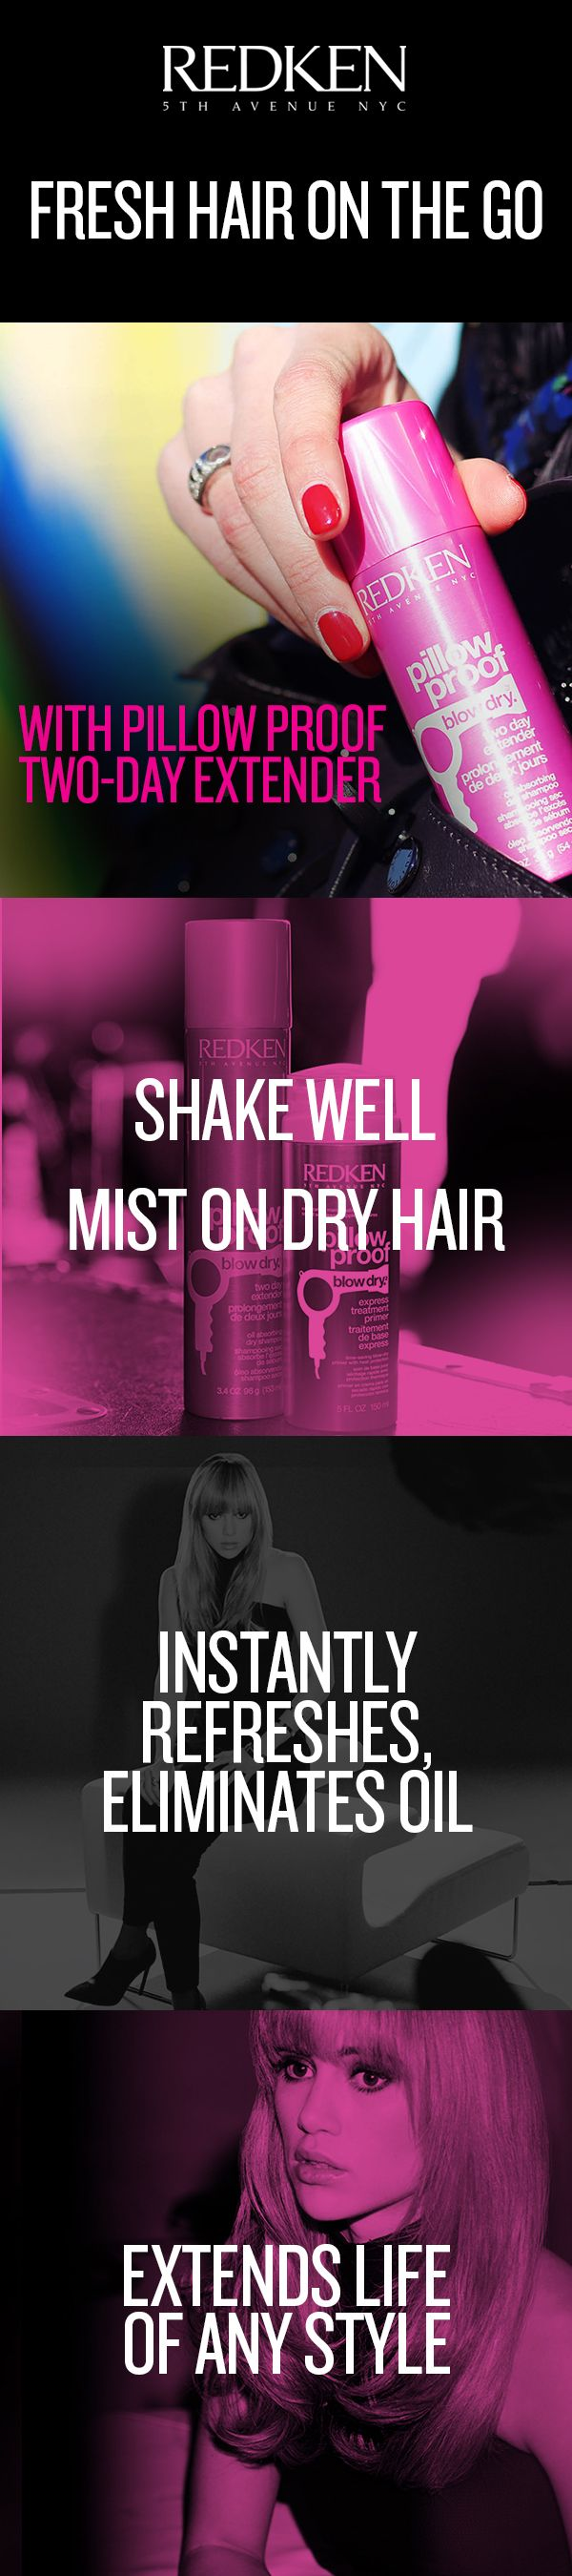 Pillow Proof Blow Dry Two Day Extender Dry Shampoo: Instantly refreshes hair and absorbs oil to extend the life of your blow-dry by two days.